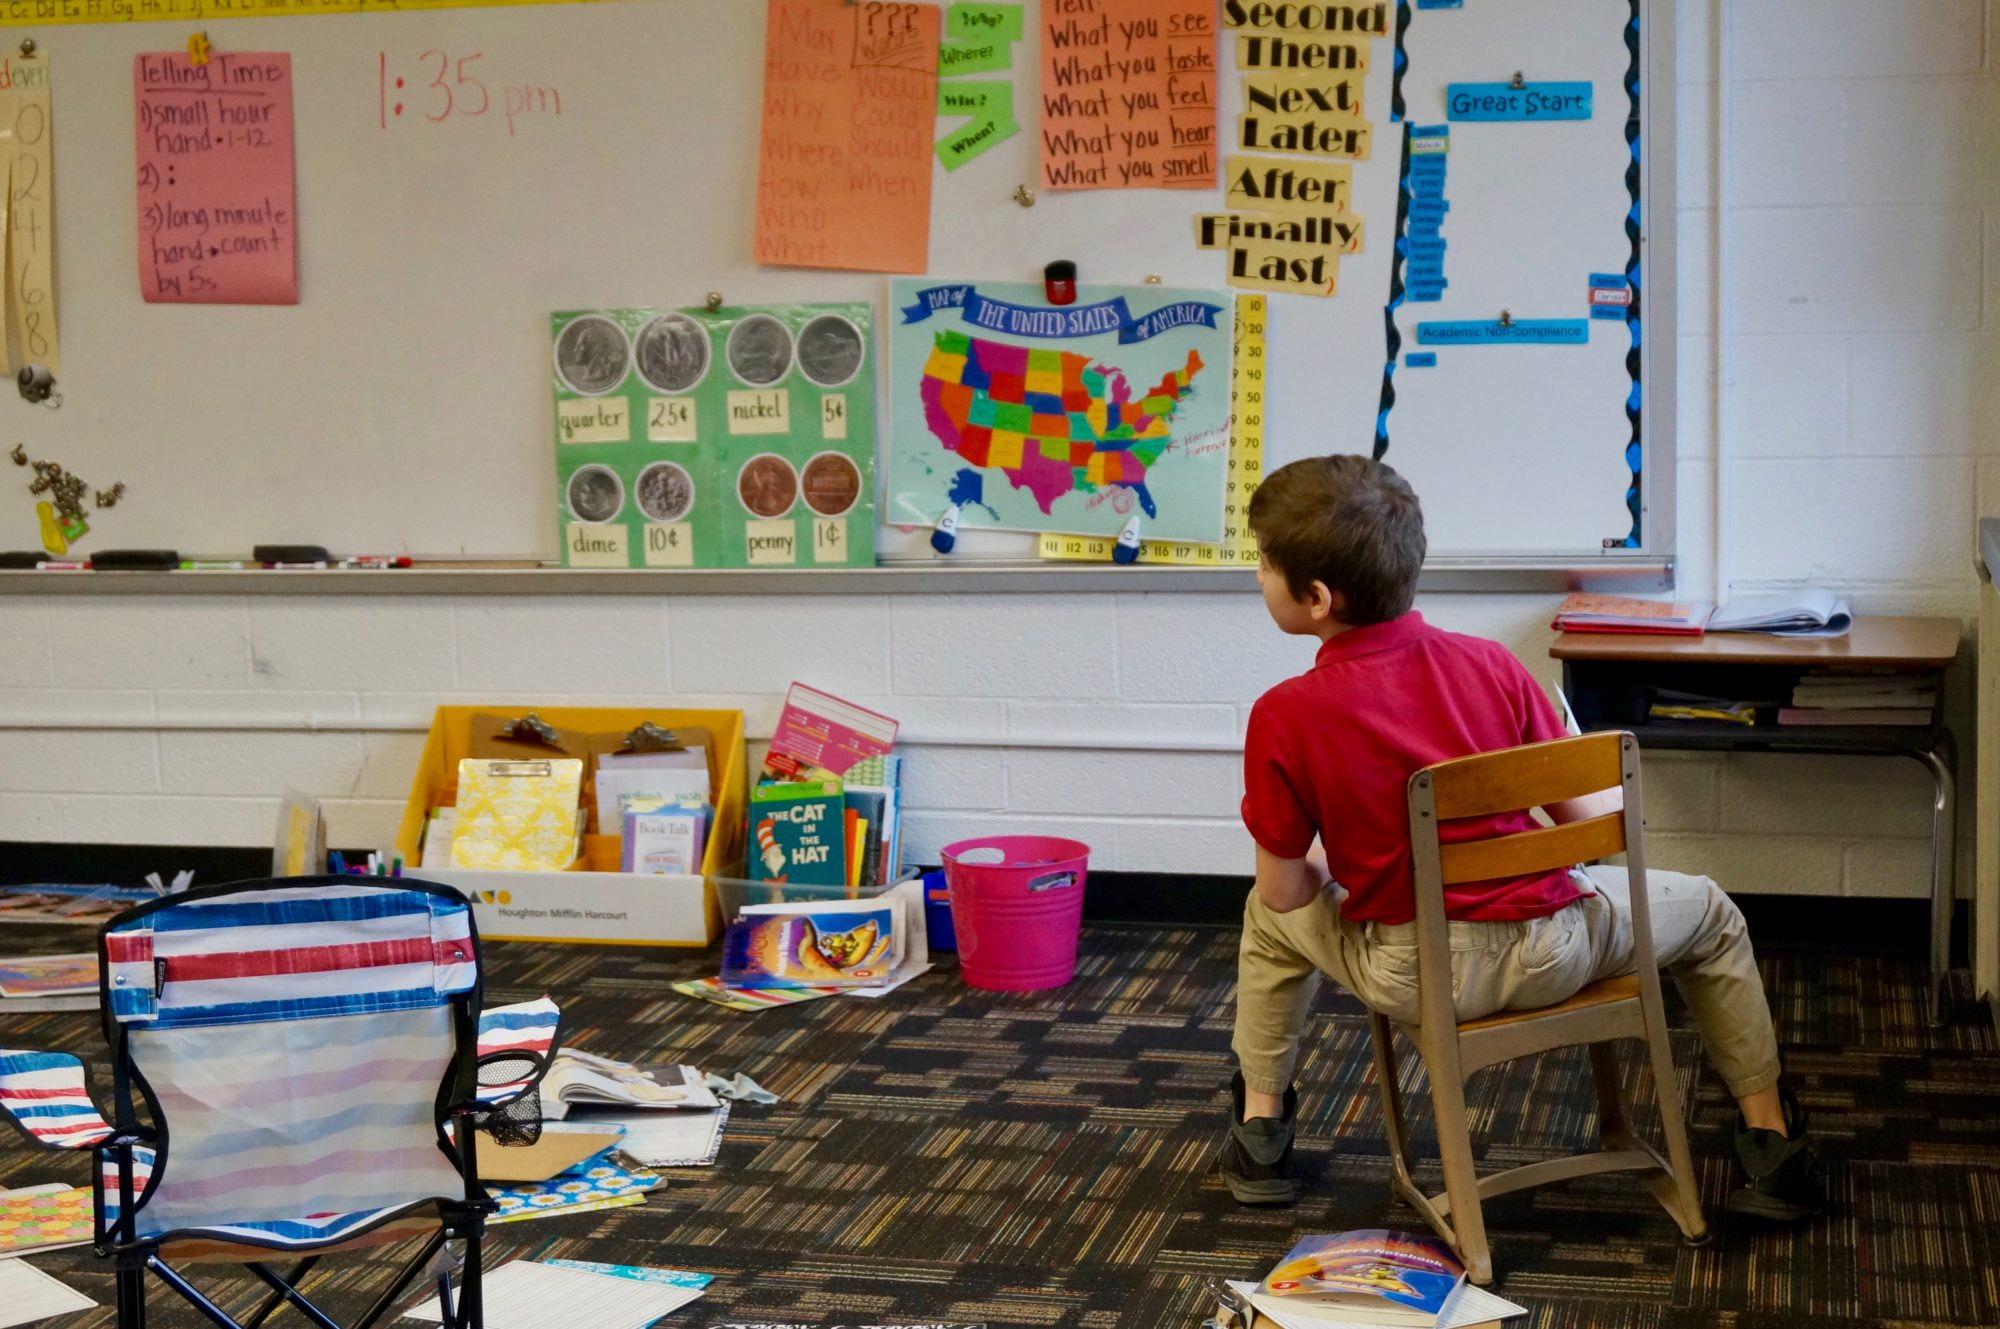 A second grade student at School 93, an innovation school in Indianapolis Public Schools.